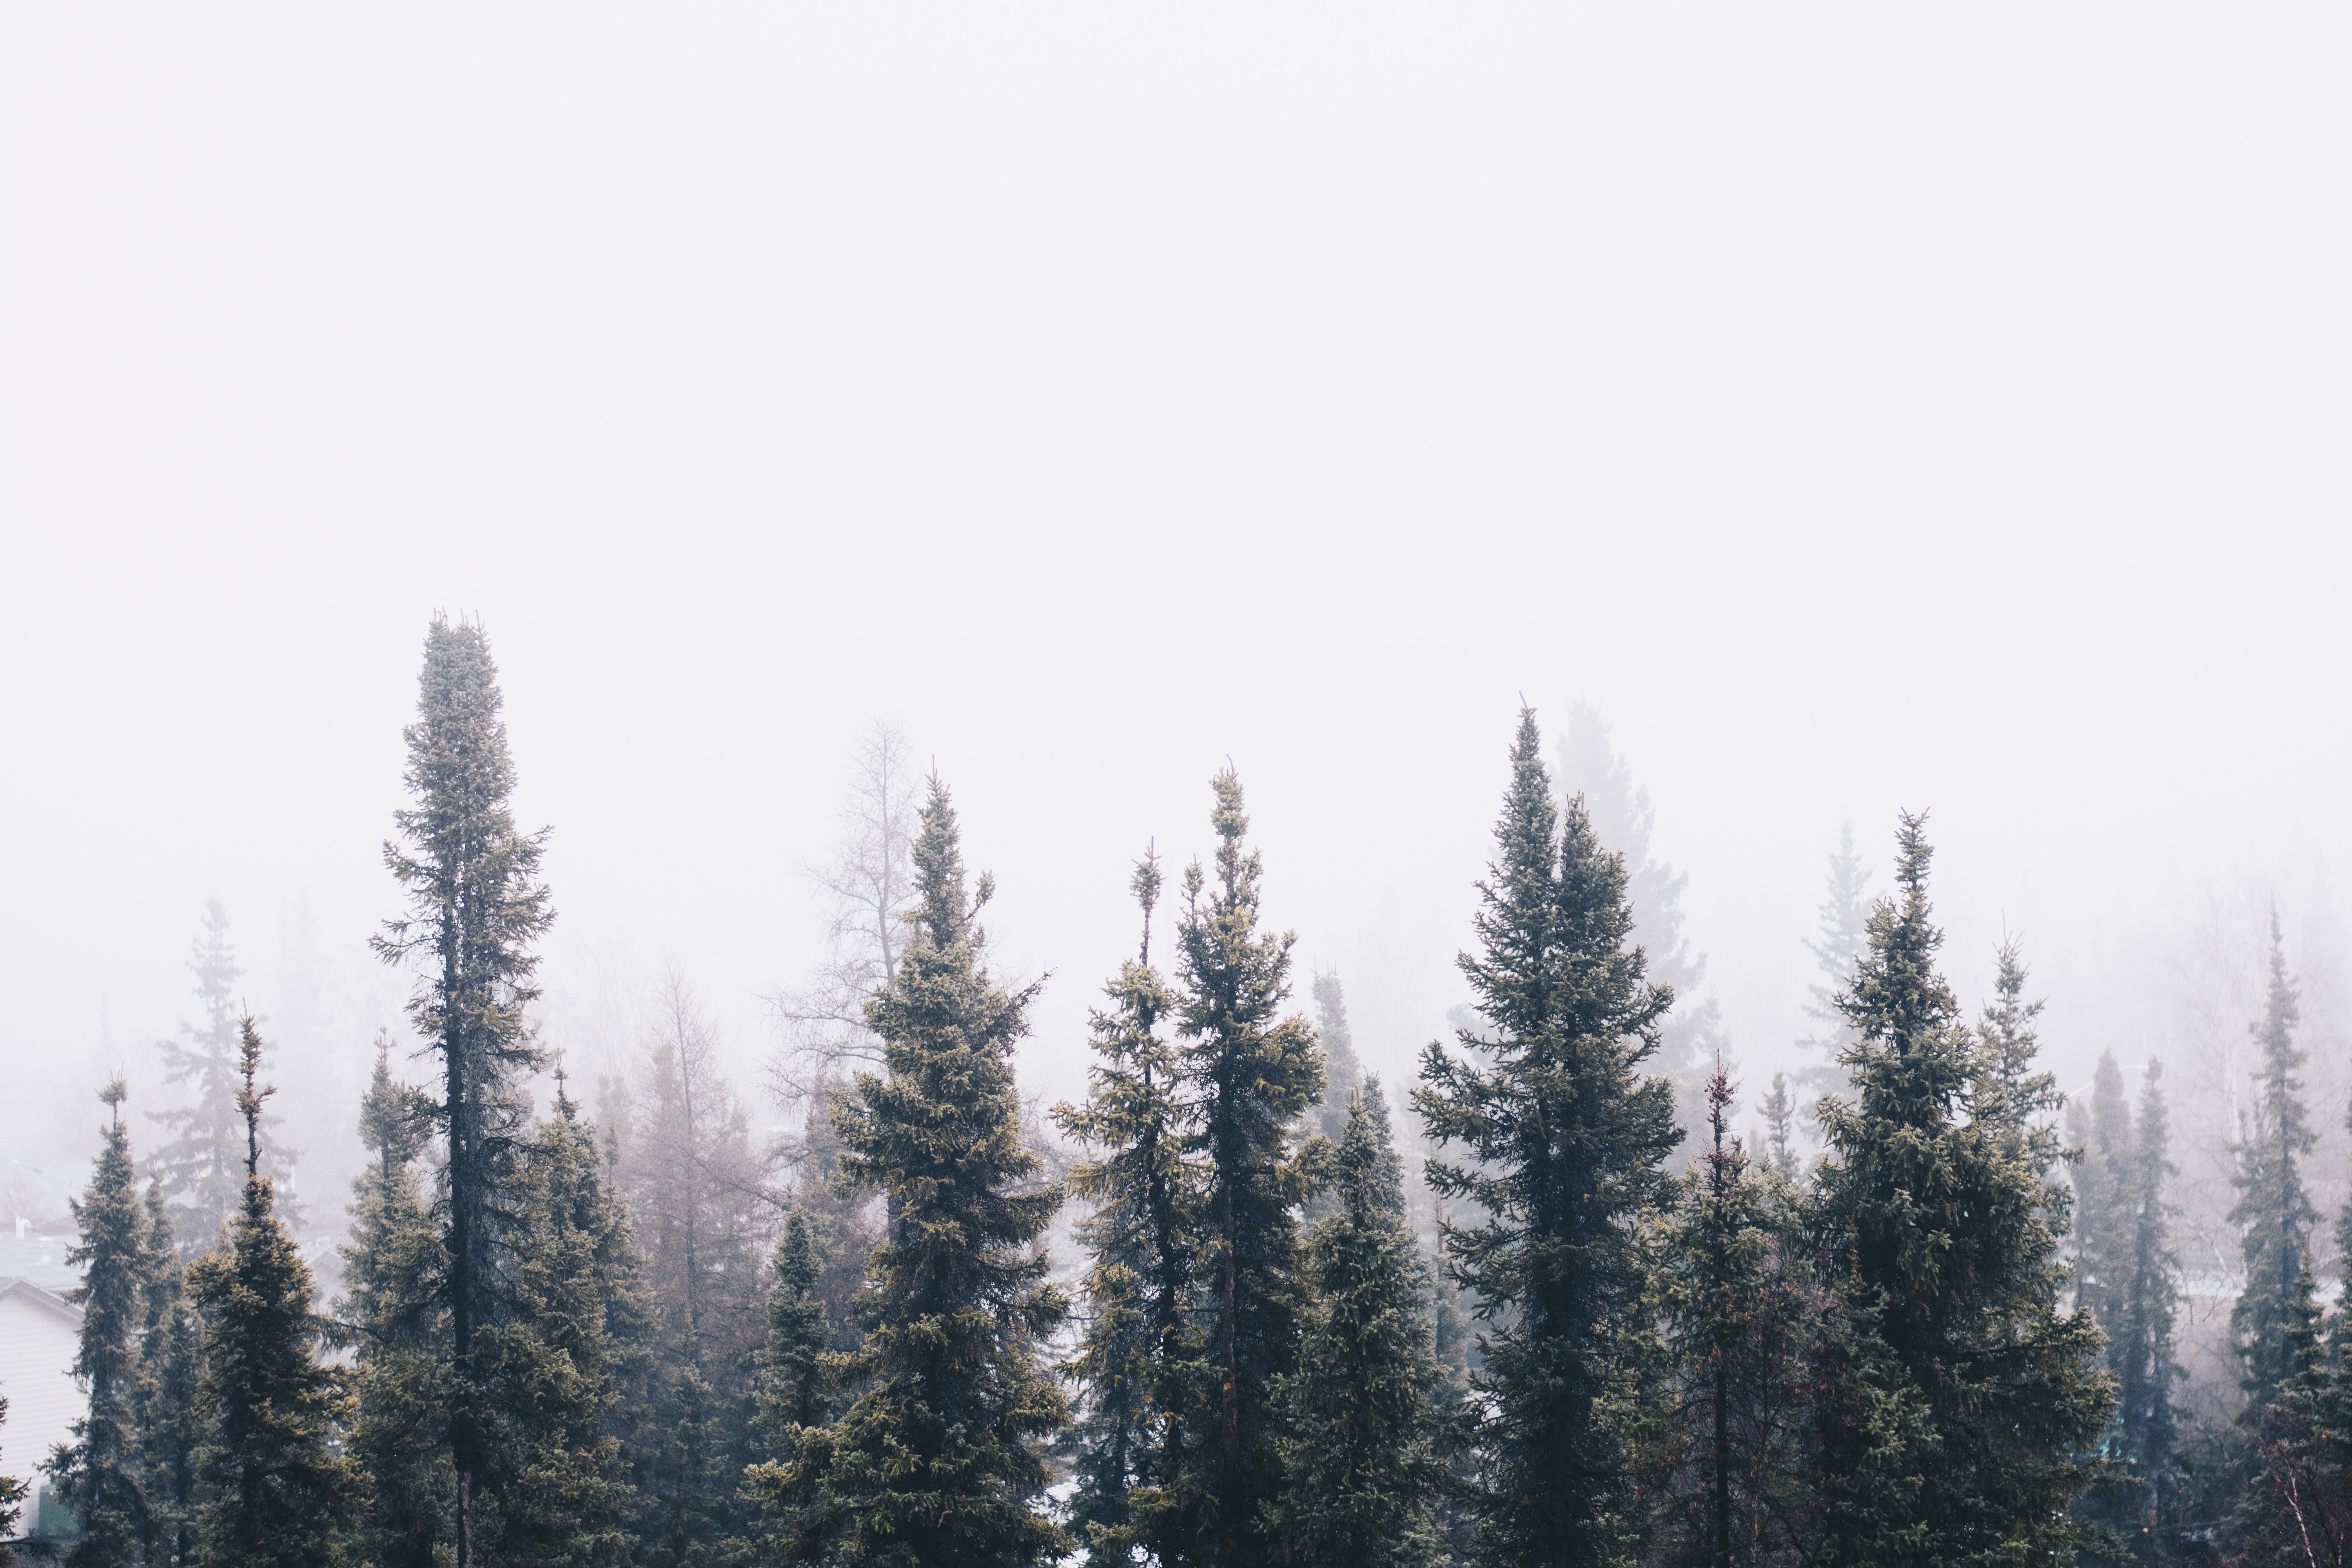 Foggy sky over forest of evergreens in the winter